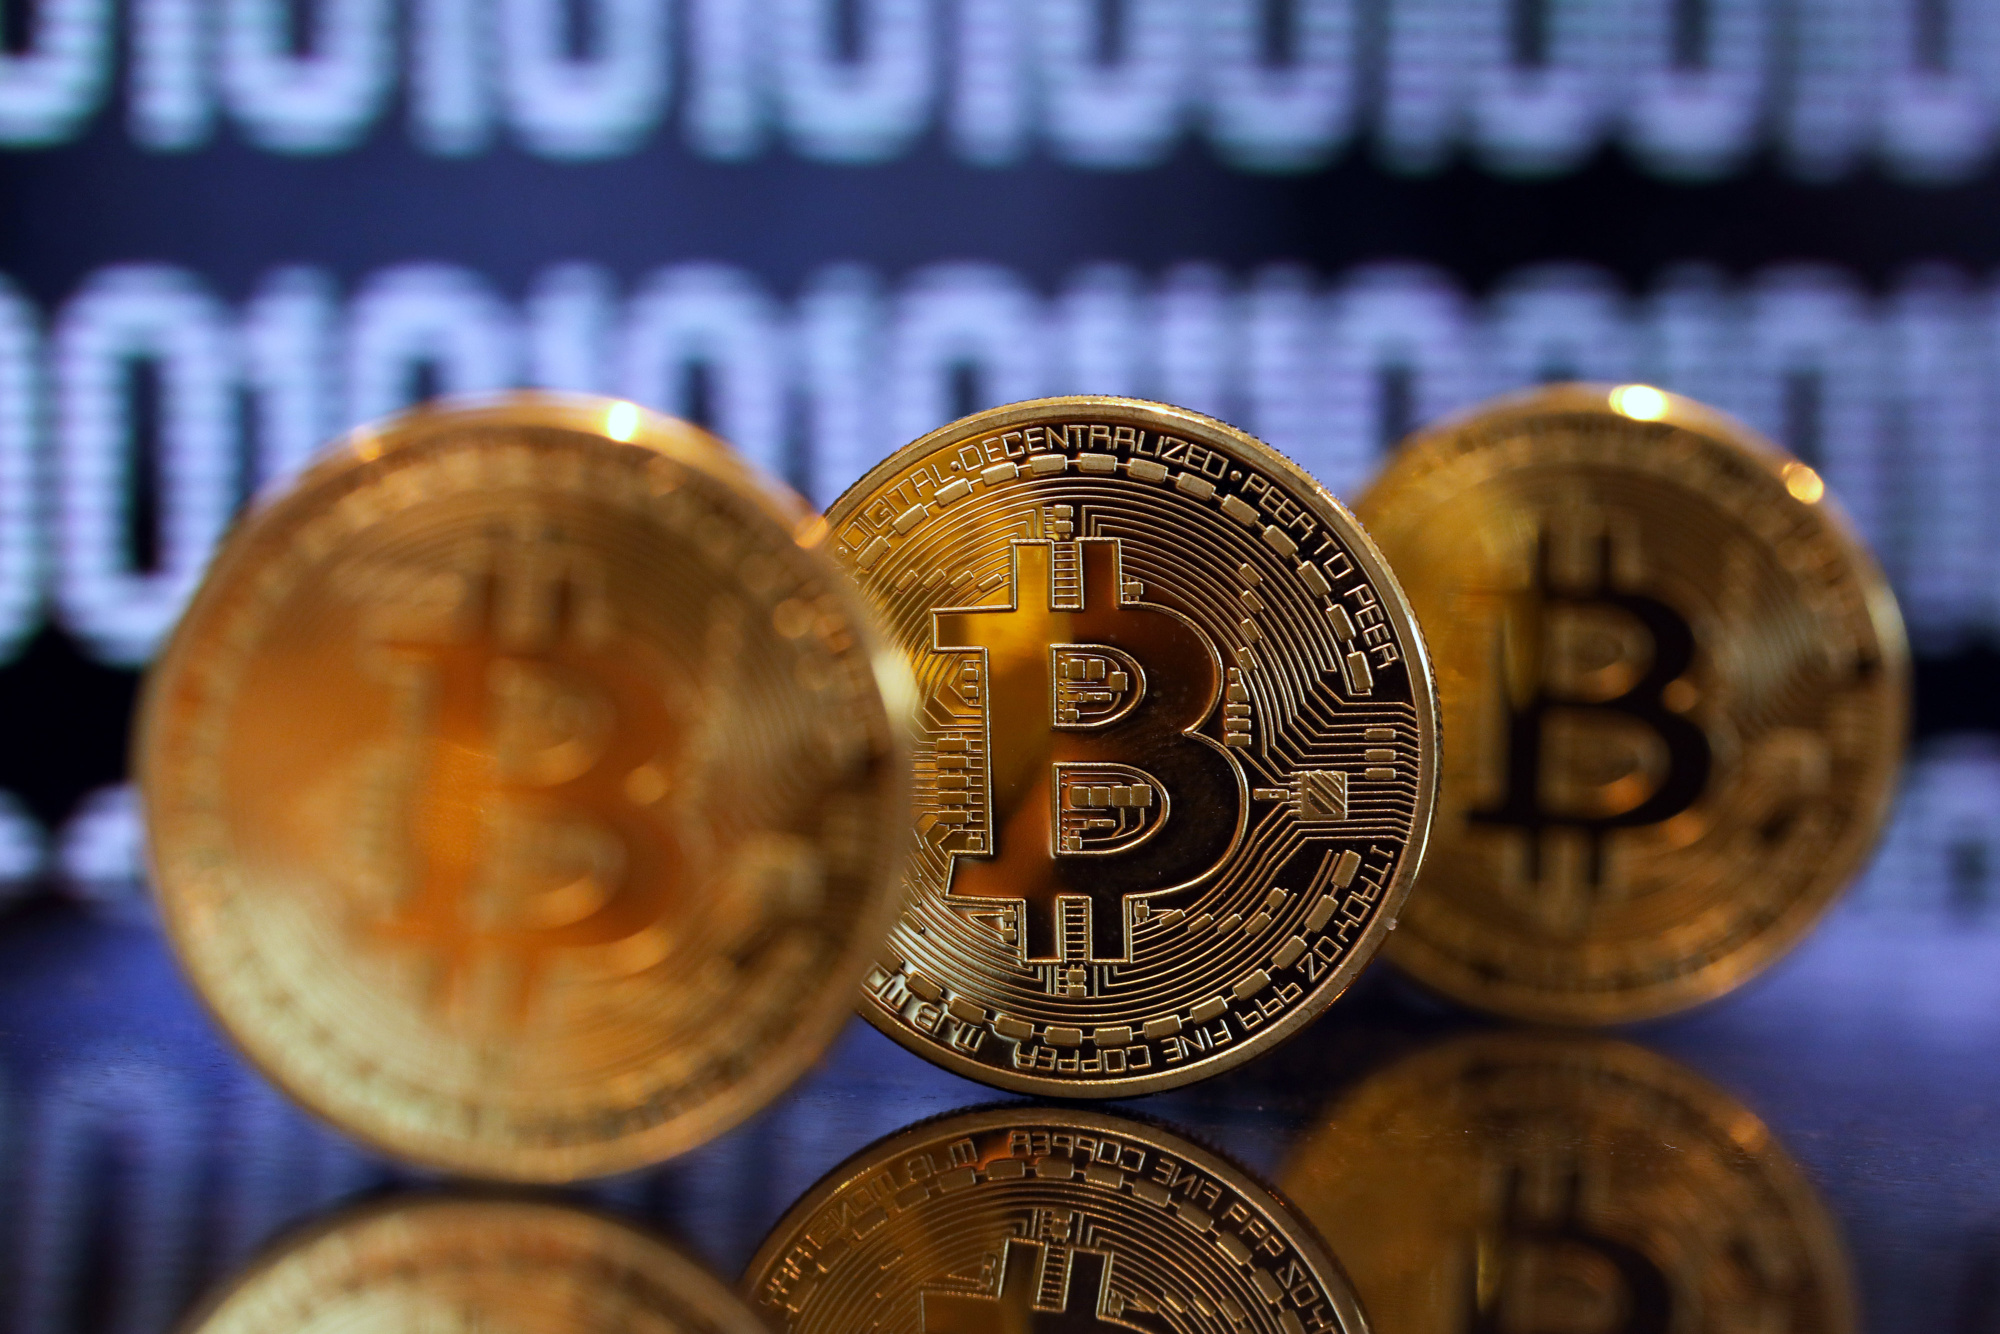 """As values increase over time, investors and """"hodlers"""" are able to use their Bitcoin profits in microtransactions. These microtransactions result in increasing price stability, since pricing is no longer dependent on large-block transactions but rather smaller, less critical transactions."""